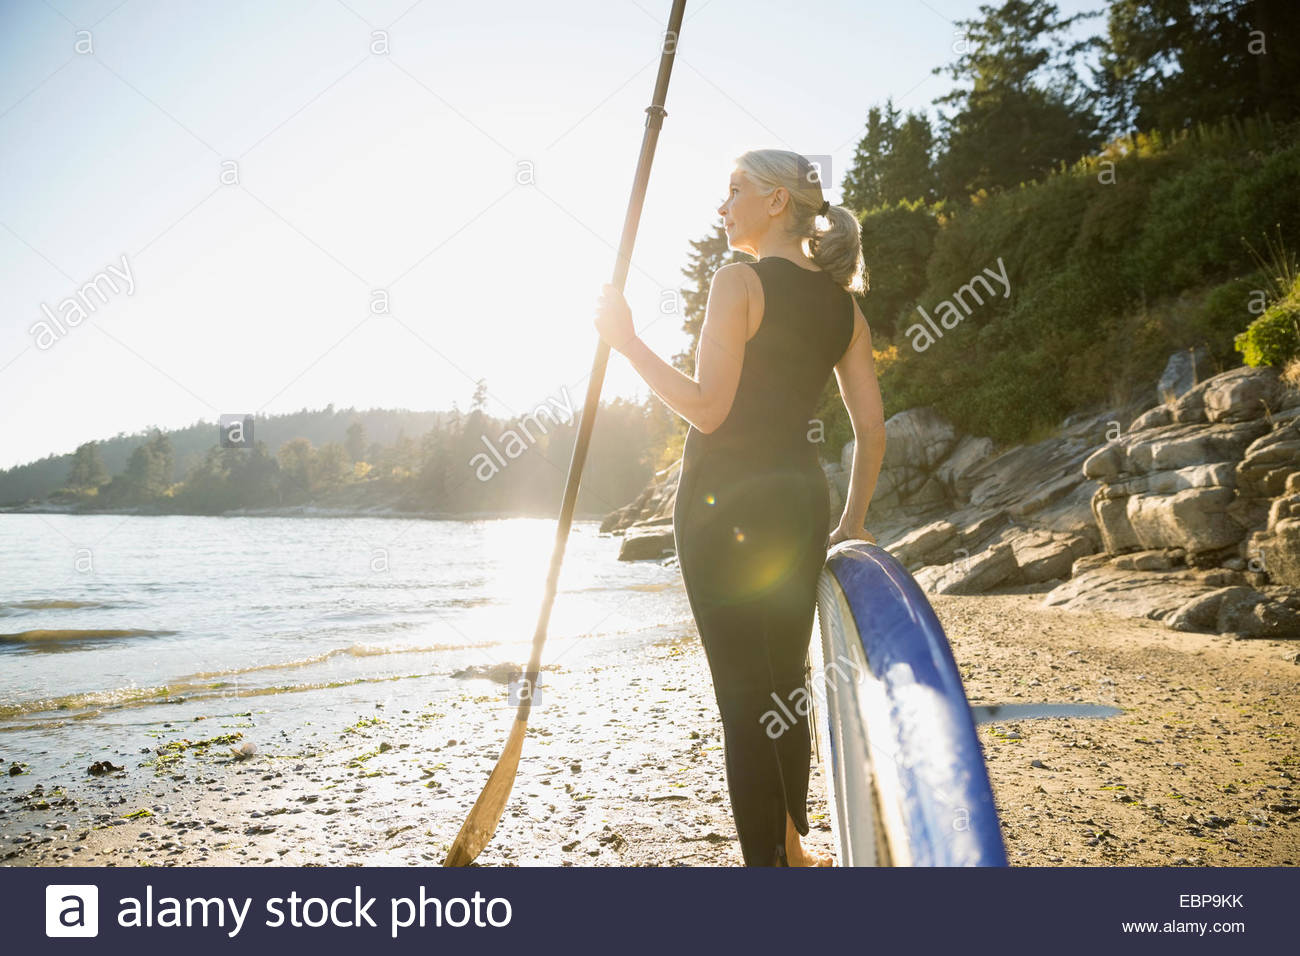 Senior woman with paddle board on sunny beach - Stock Image